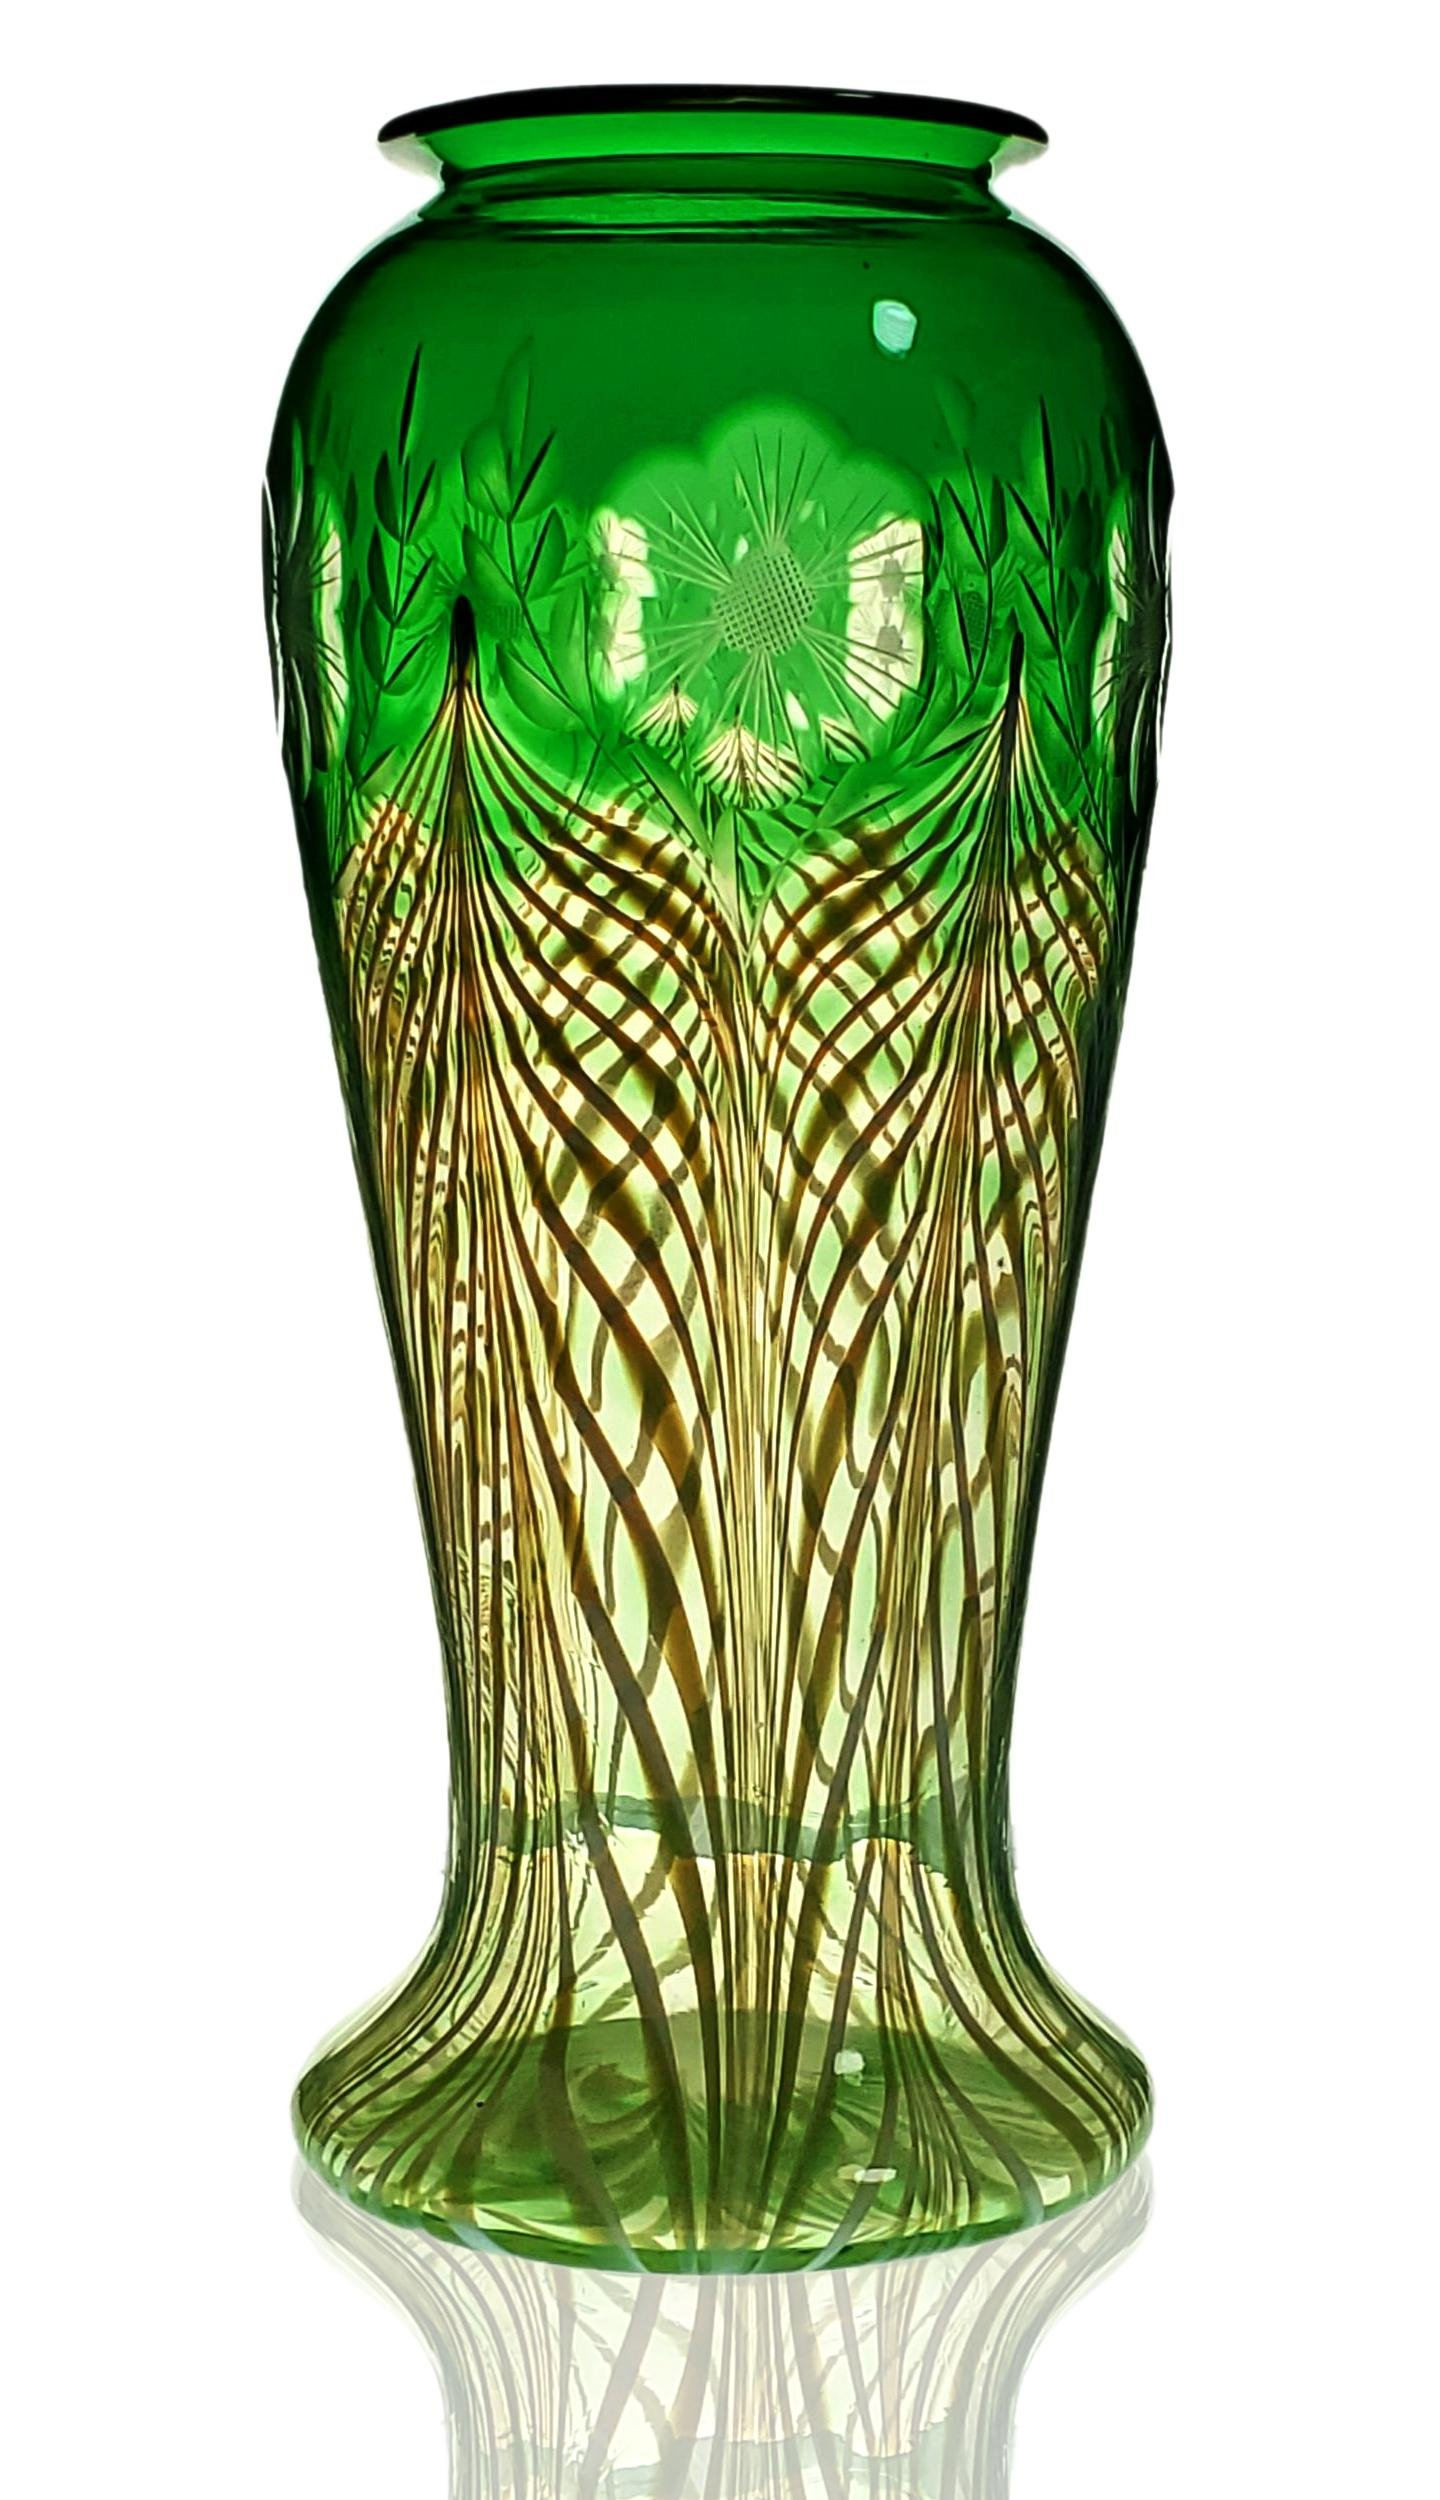 Durand green Pulled Feather design vase w/ engraved FL